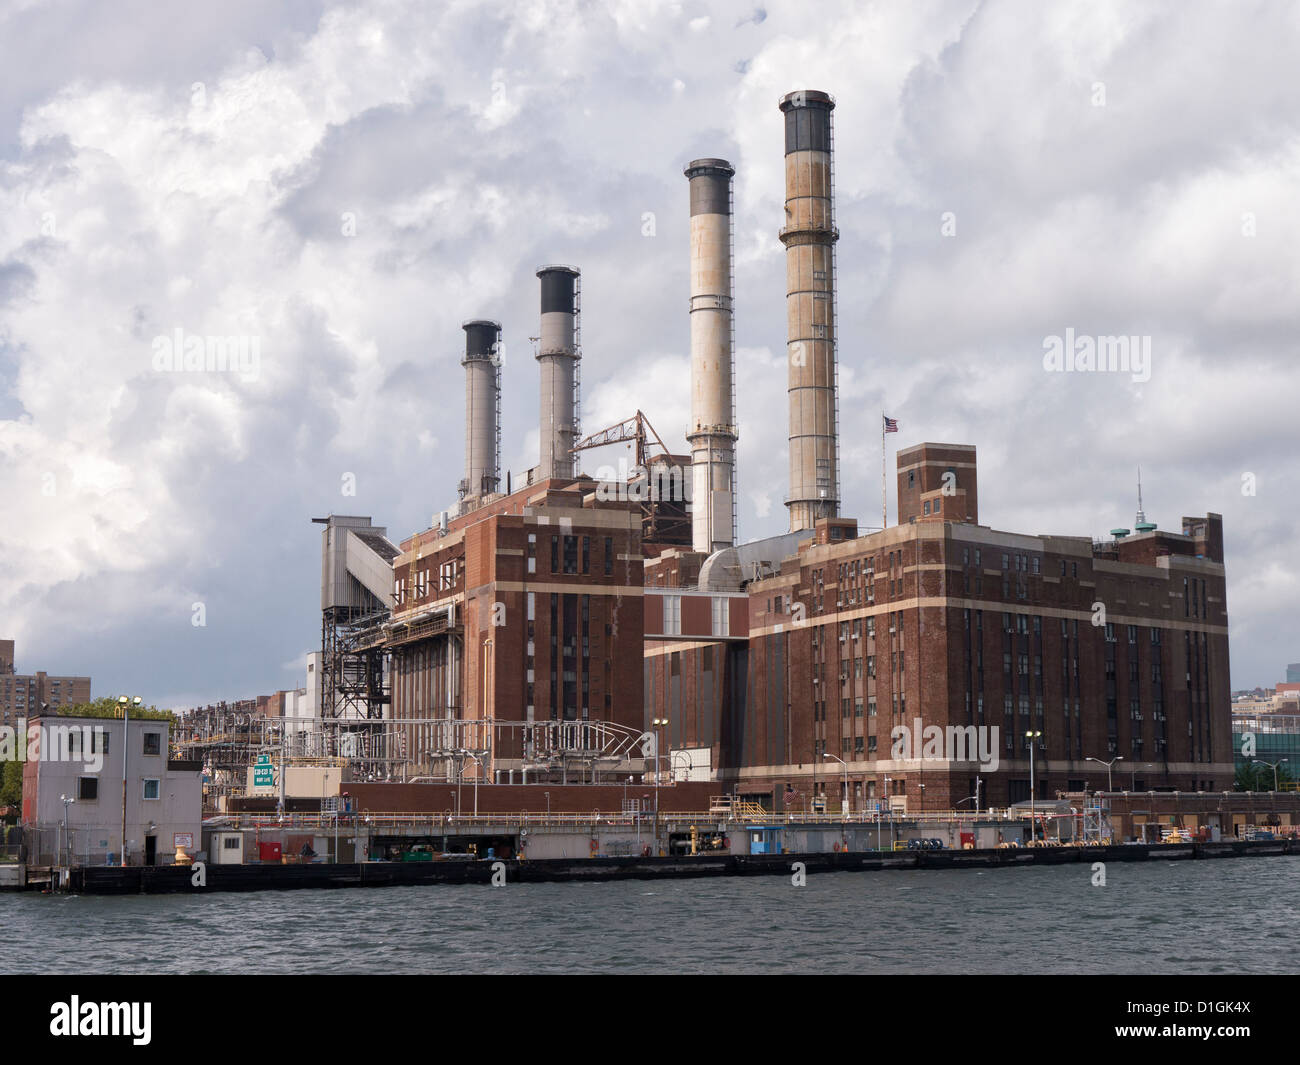 The Consolidated Edison power station on the banks of the East River on the East side of Manhattan New York City - Stock Image